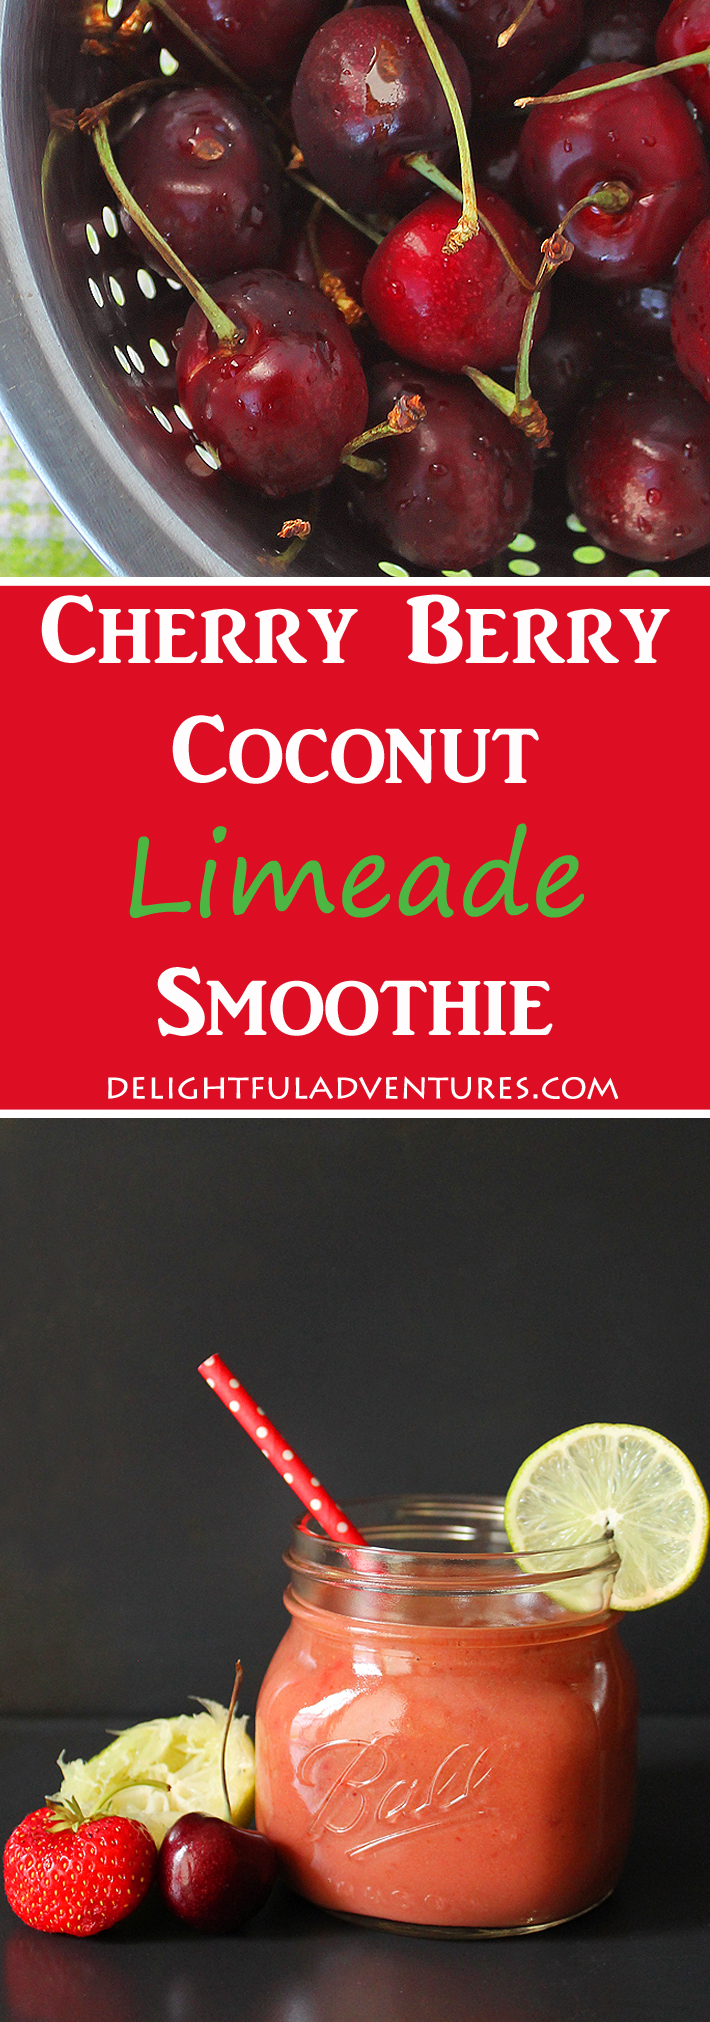 Craving a refreshing, sweet, but tart drink to cool you down on a hot summer's day? This Cherry Berry Coconut Limeade Smoothie will do the trick!